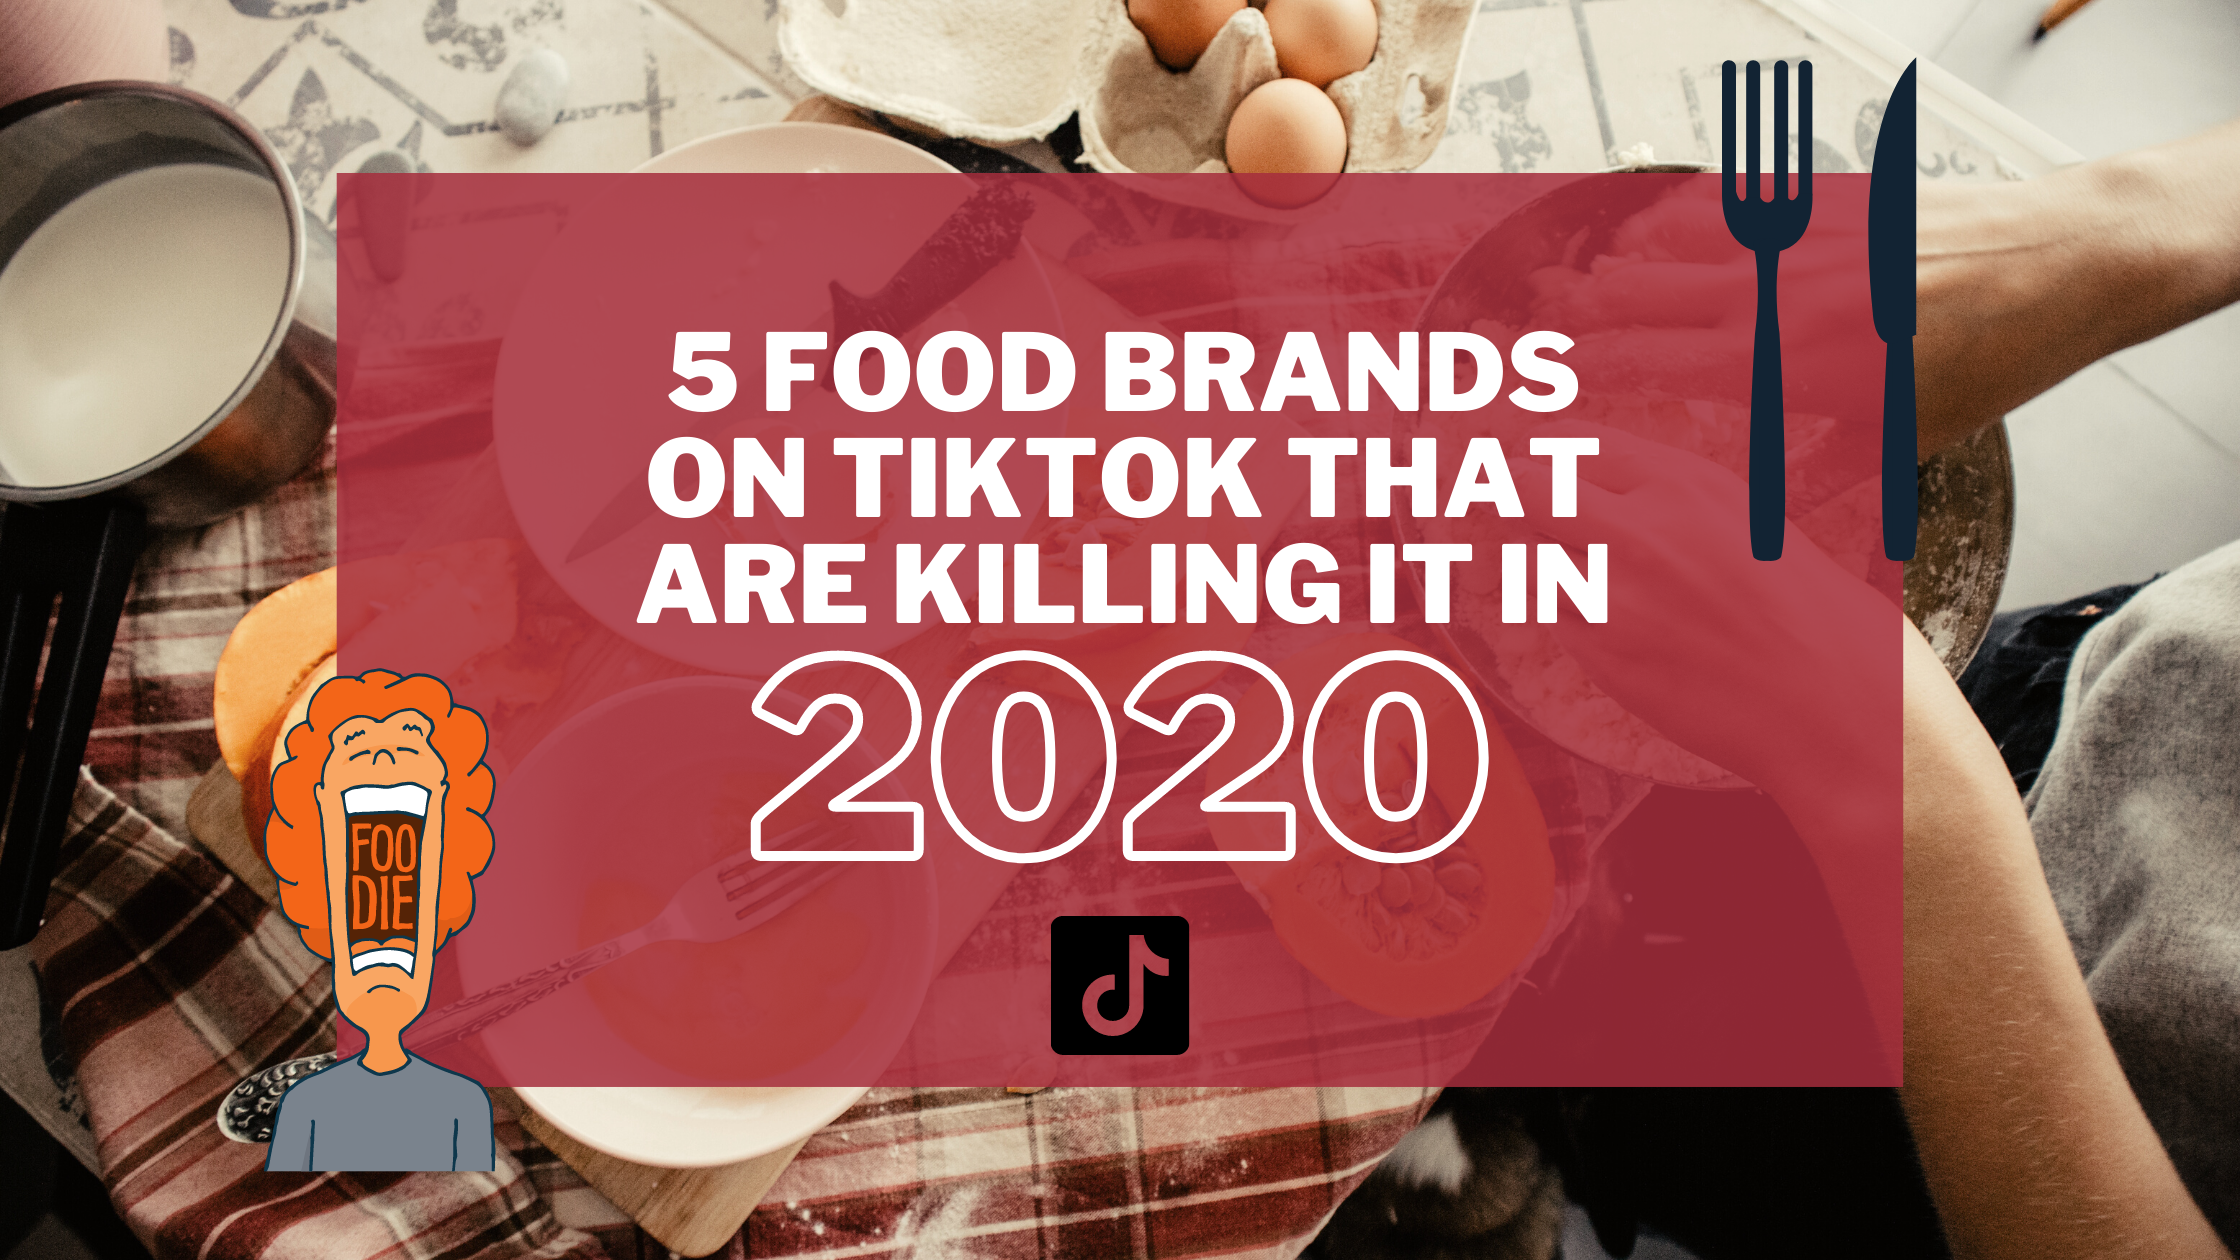 5 Food Brands on TikTok That Are Killing It In 2020